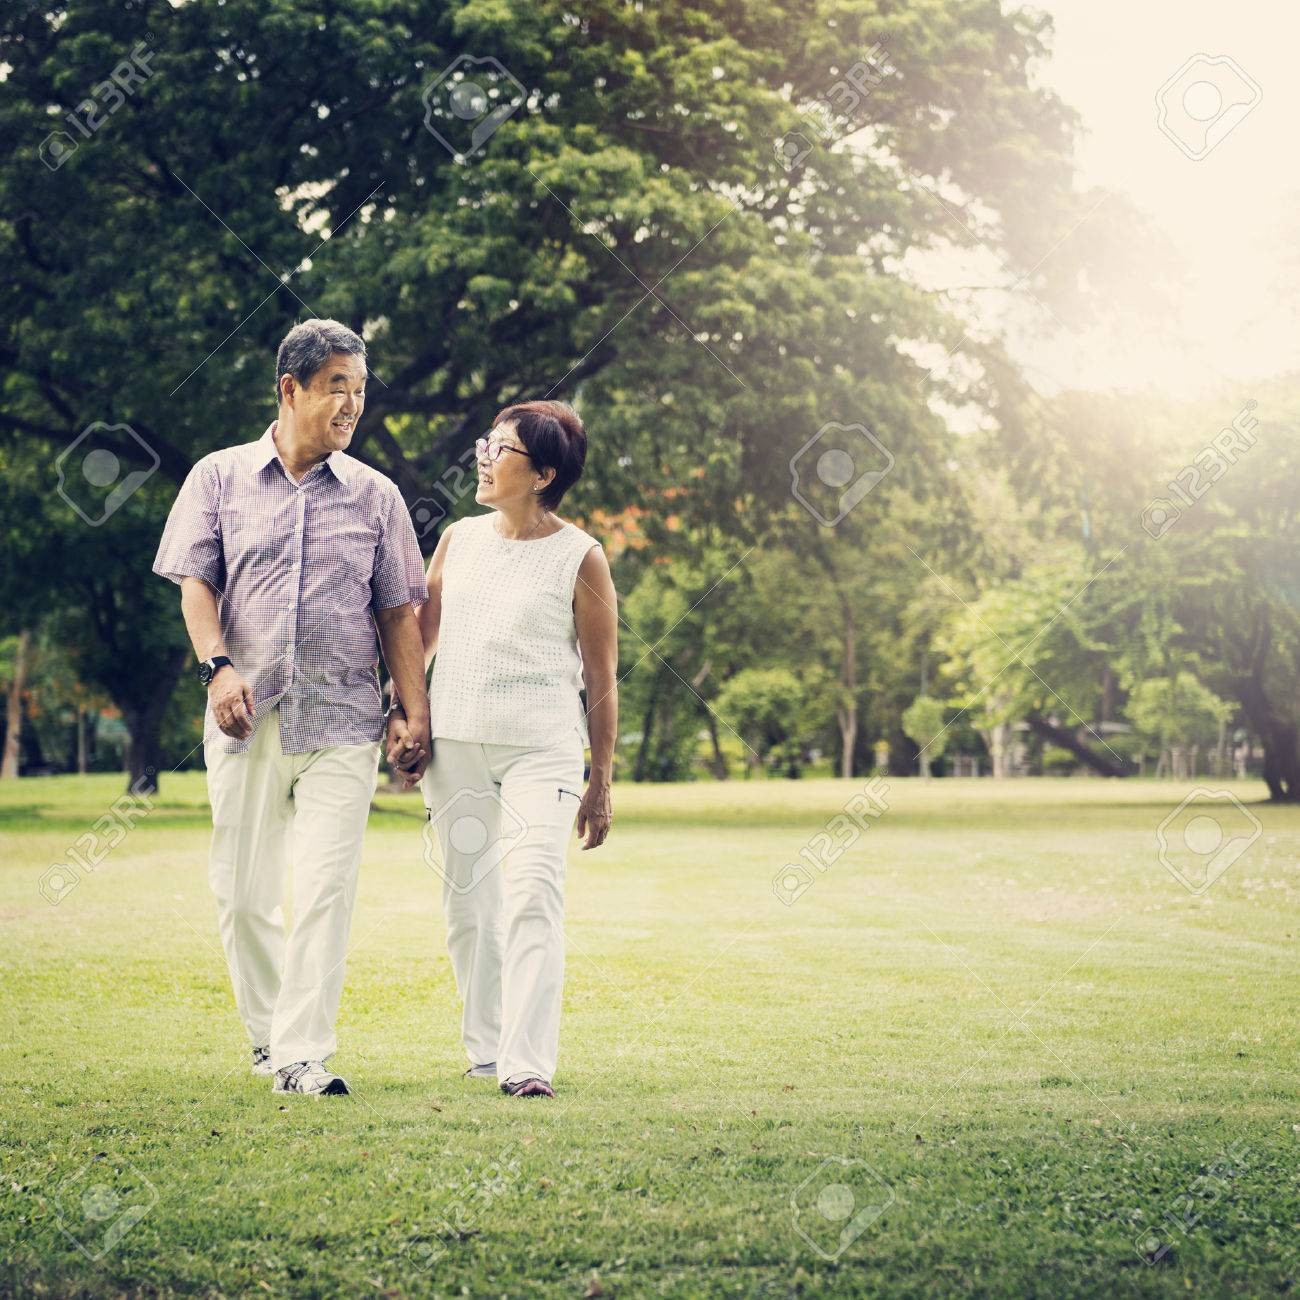 Senior Couple Park Walking Concept Standard-Bild - 61647820